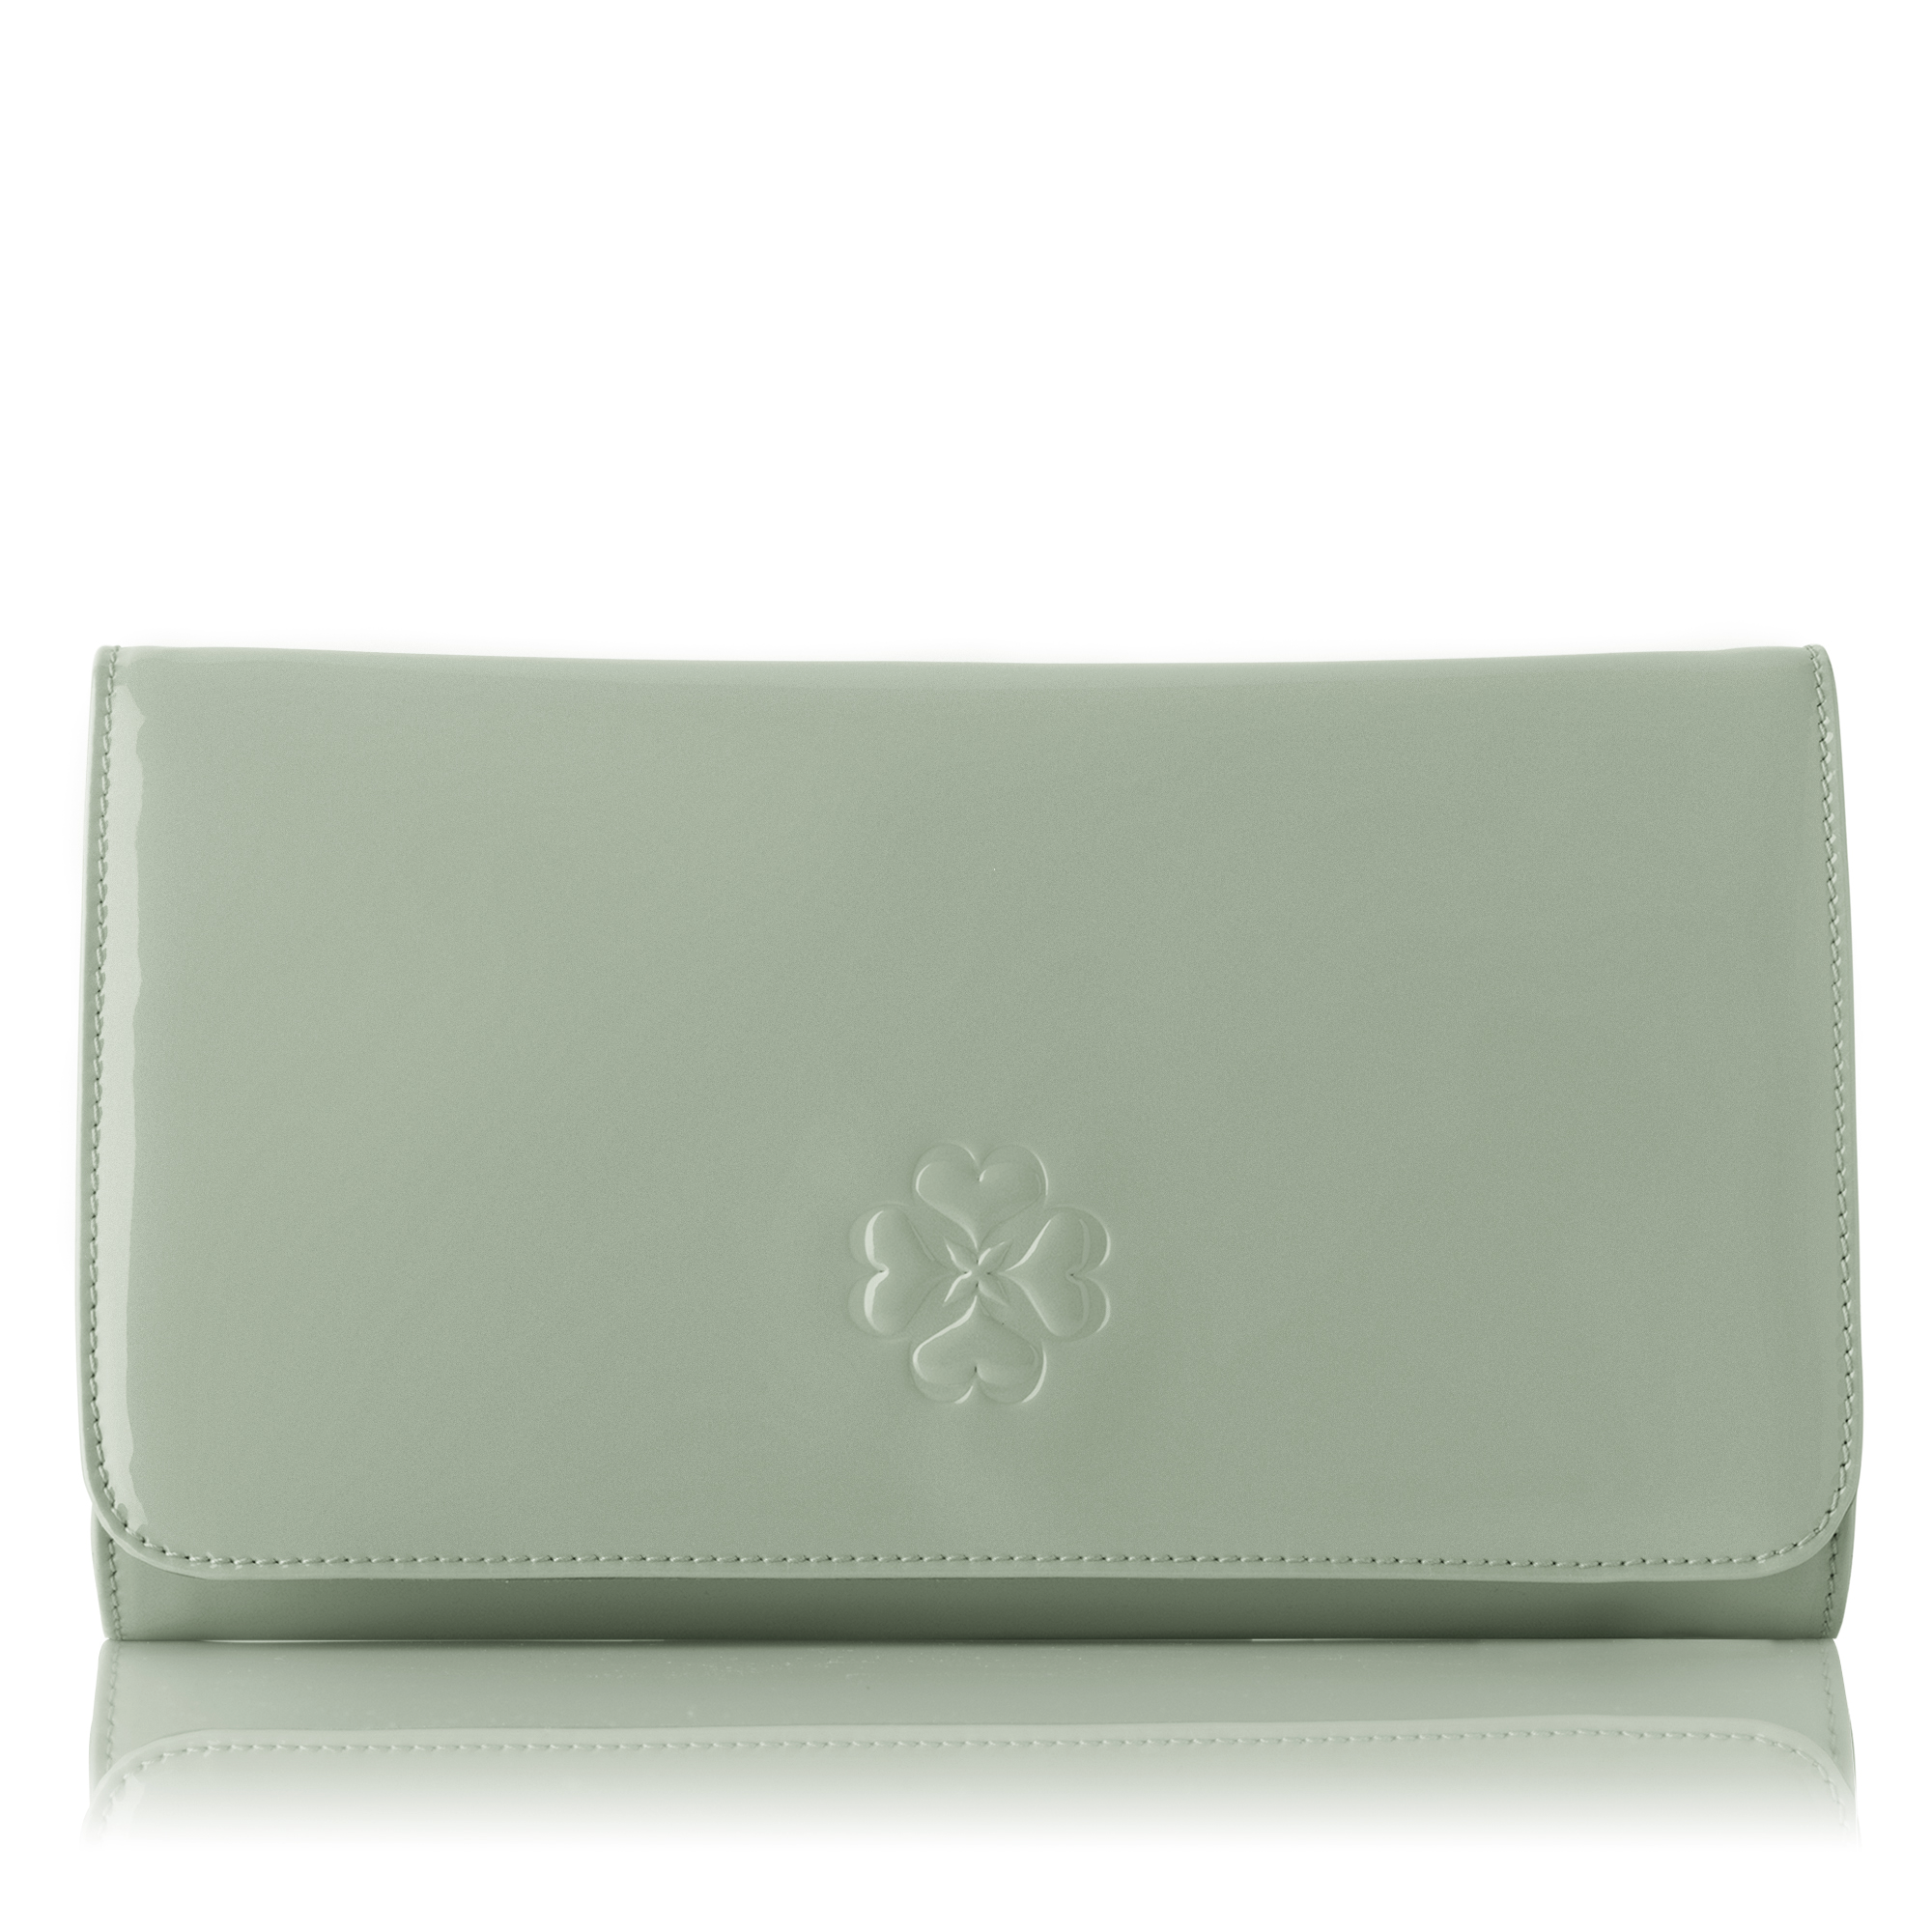 Frome Patent Clutch in 'Clay'